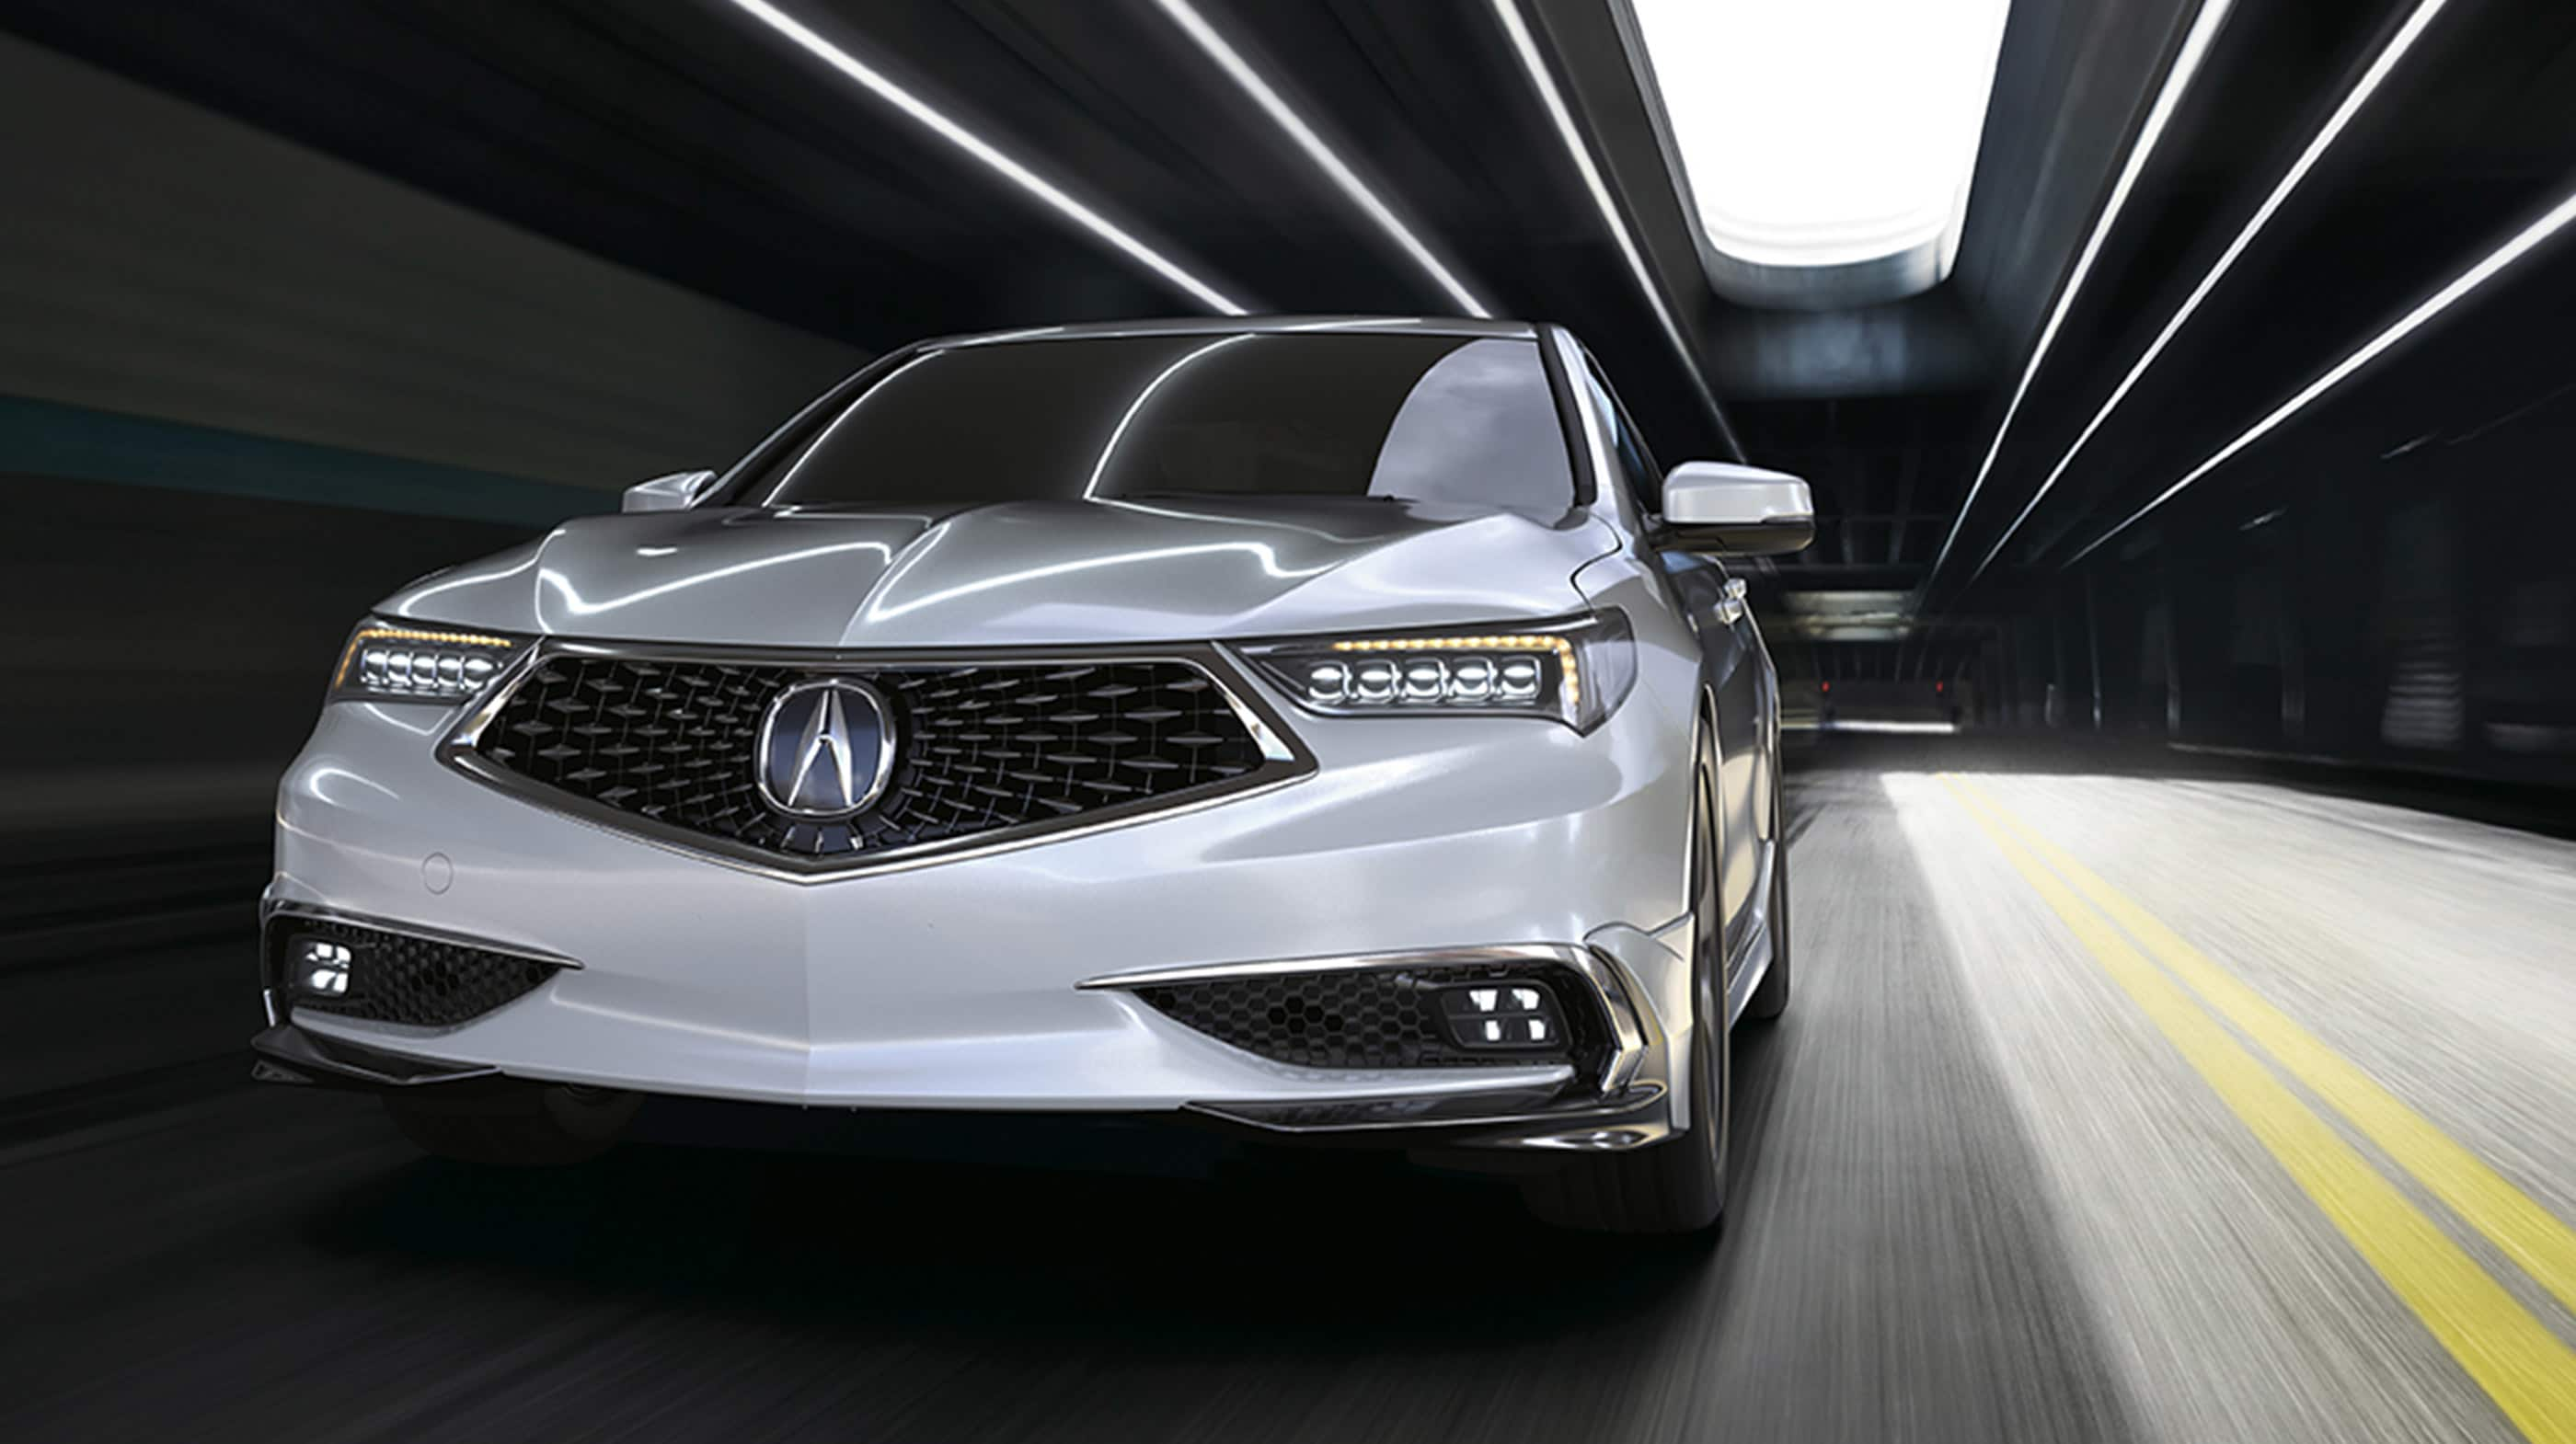 2020 Acura TLX for Sale near Orland Park, IL